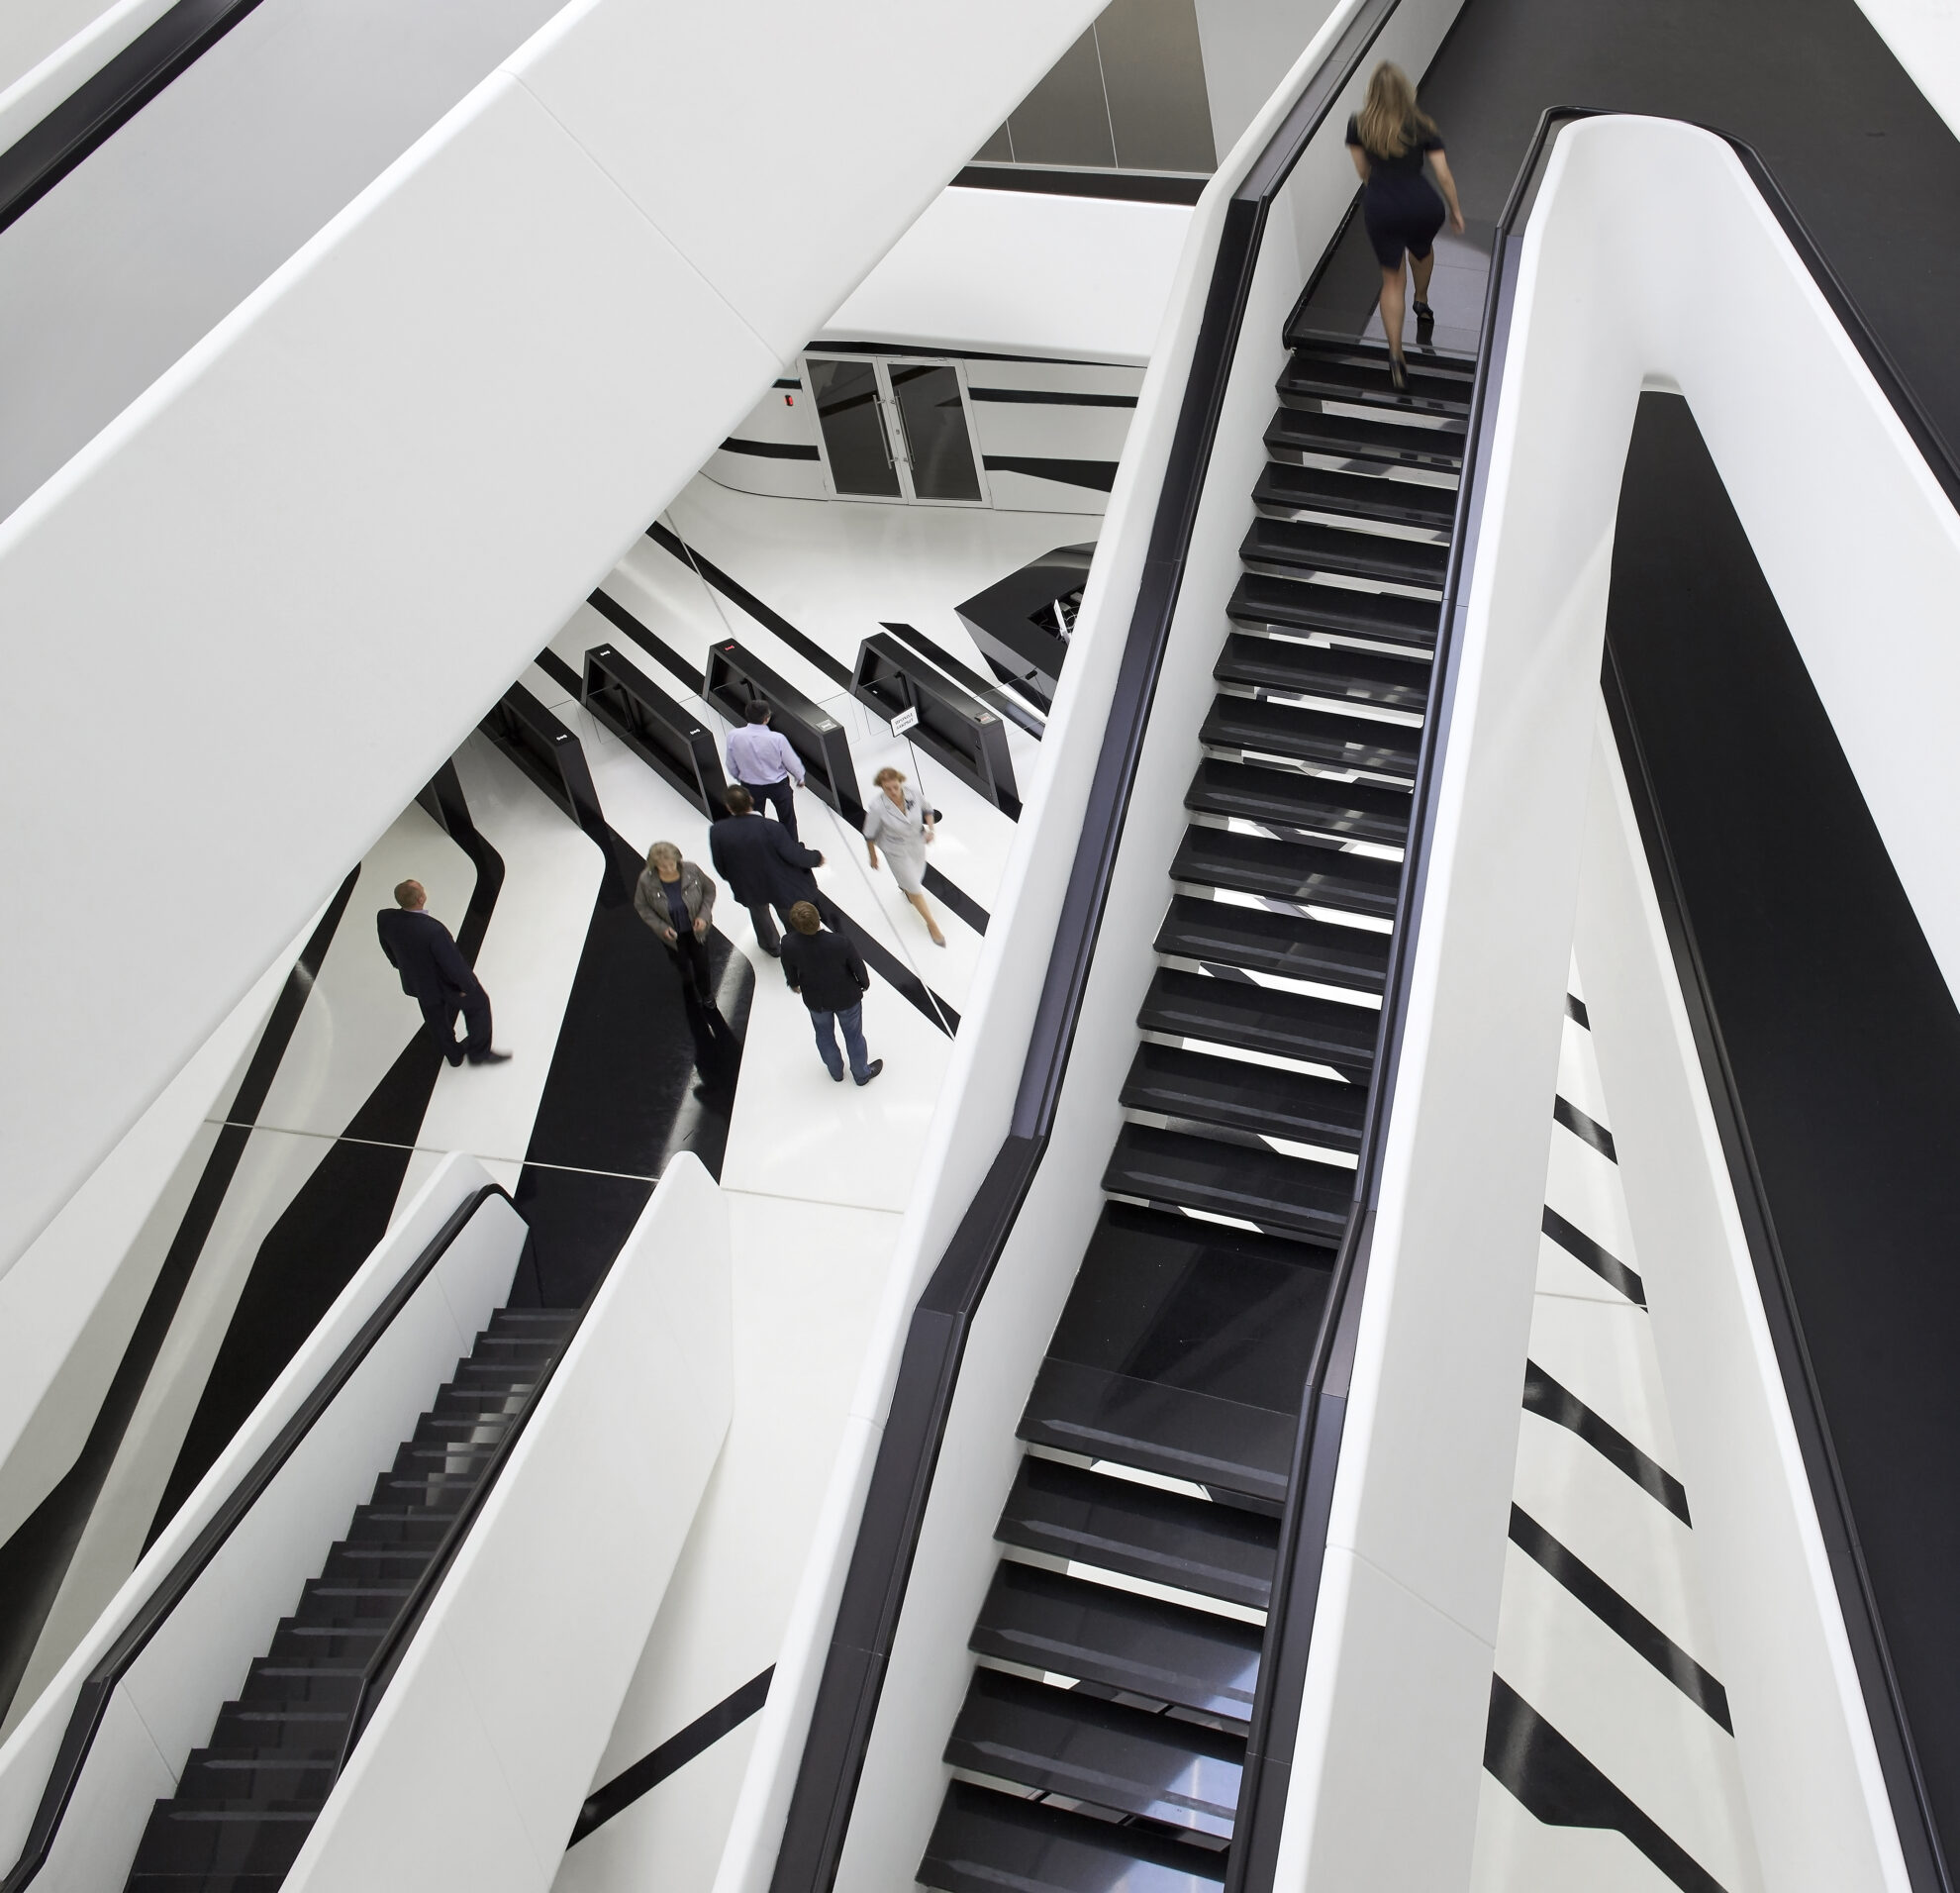 ZHA_Dominion Office Space_Moscow_∏Hufton+Crow_009